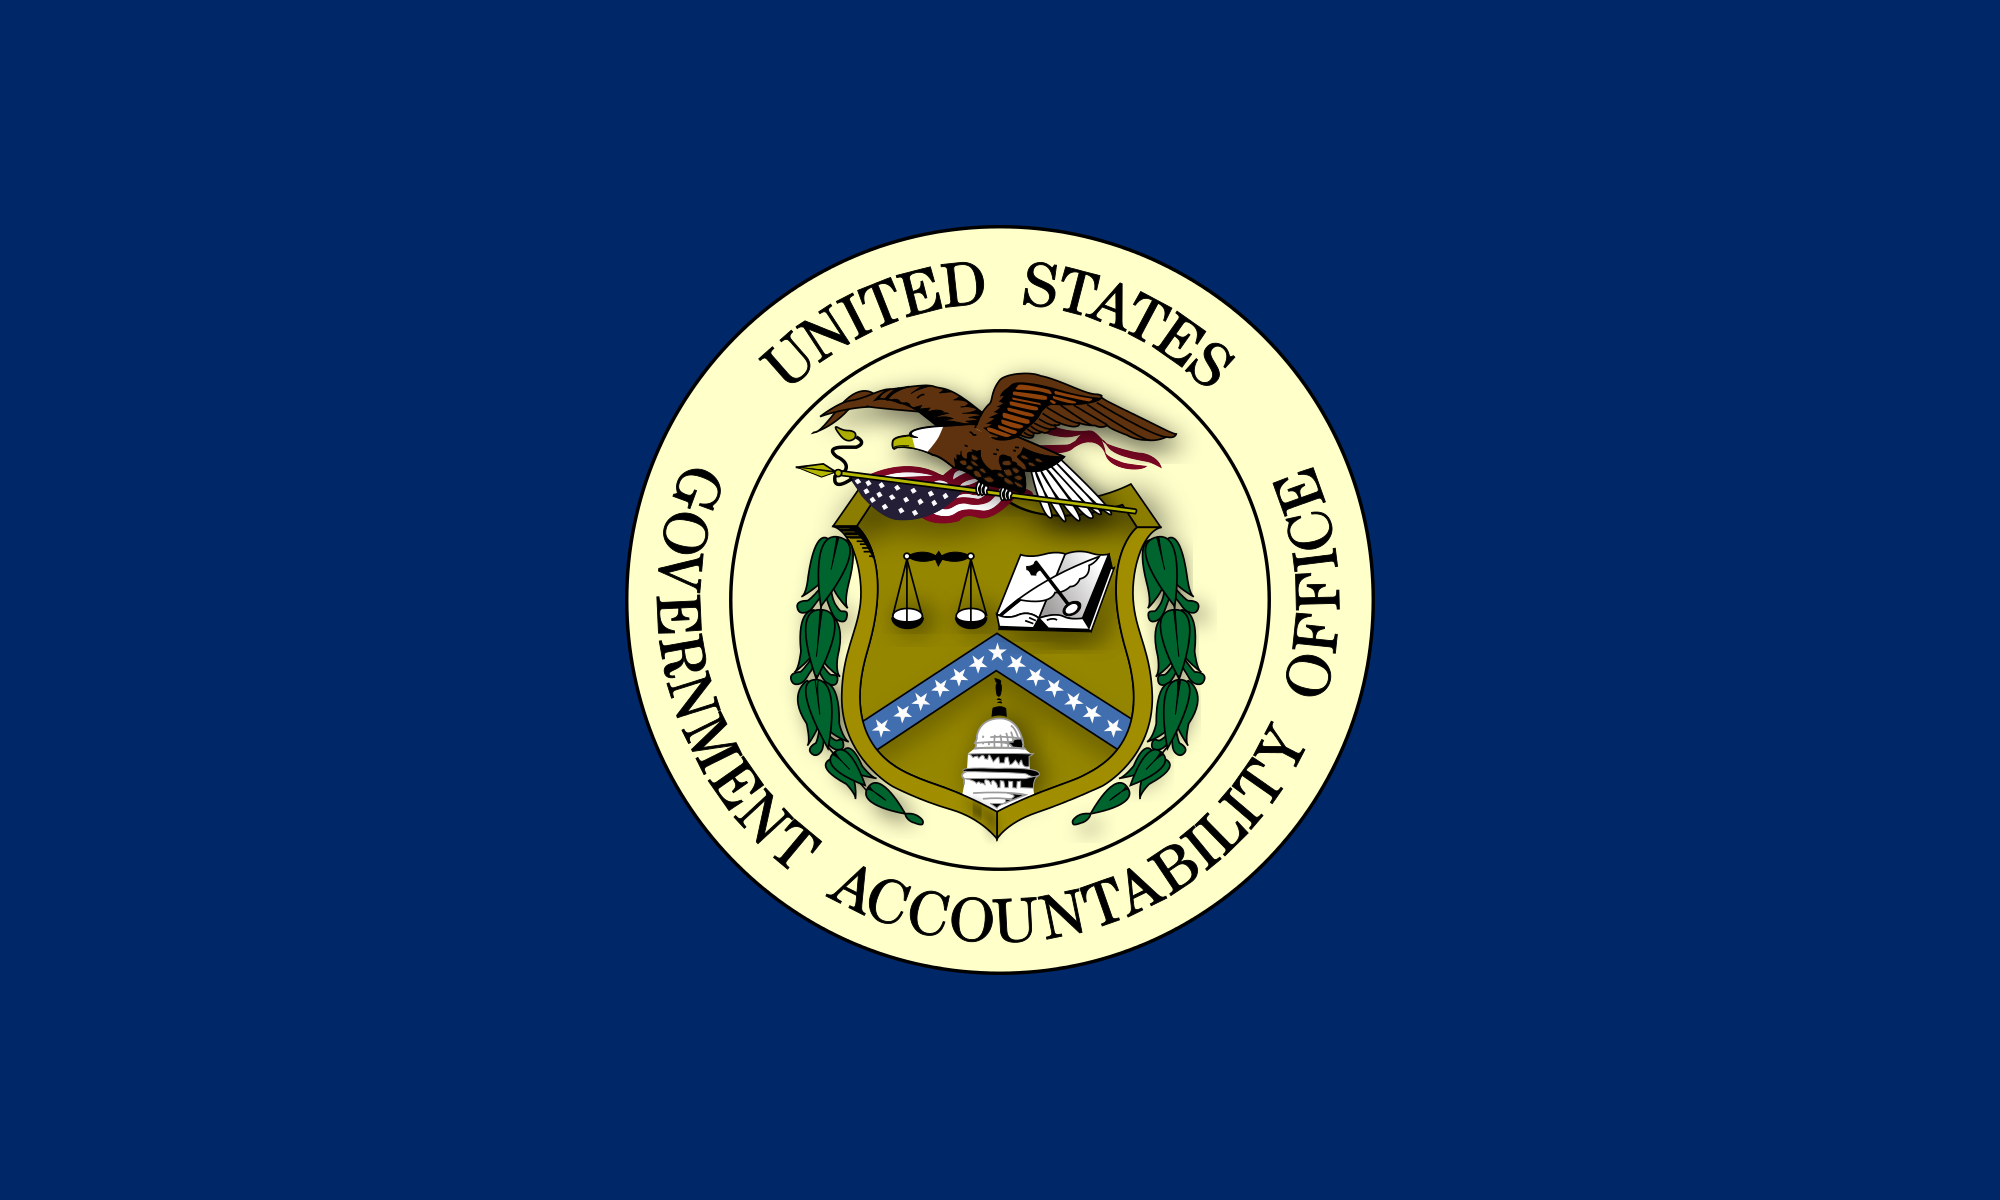 FileFlag of the United States Government Accountability fice